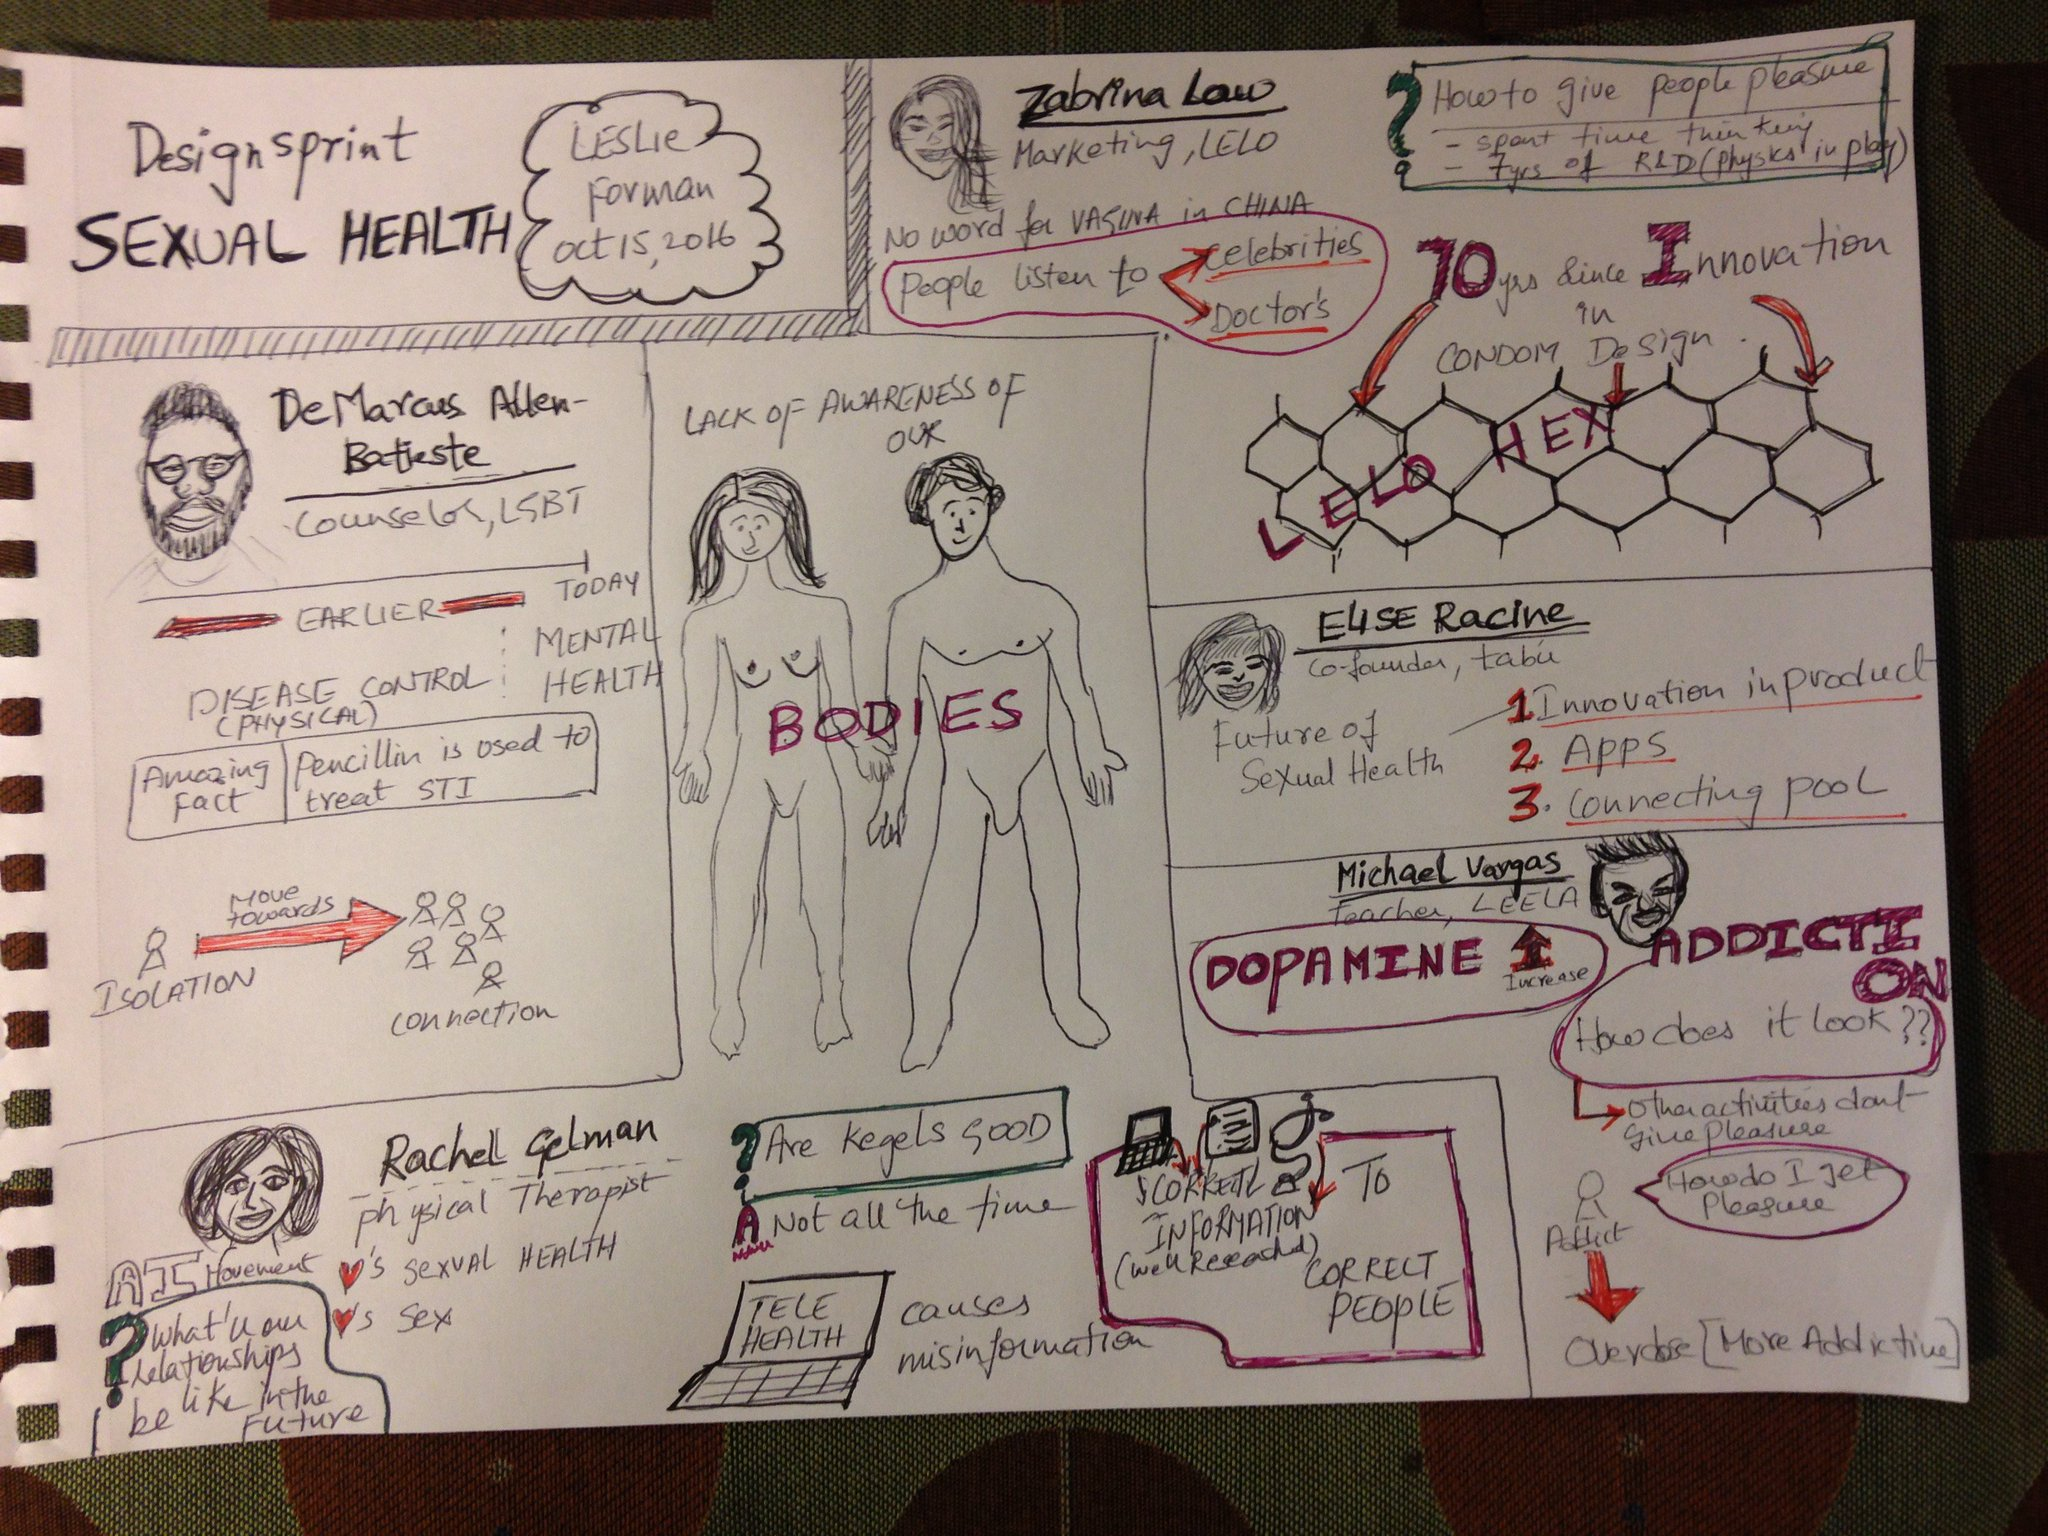 Love this #sketchnote from the #healthysexydesign panel at @GA_SF!! Thanks Haritha! :) https://t.co/HS4iiOhDA2